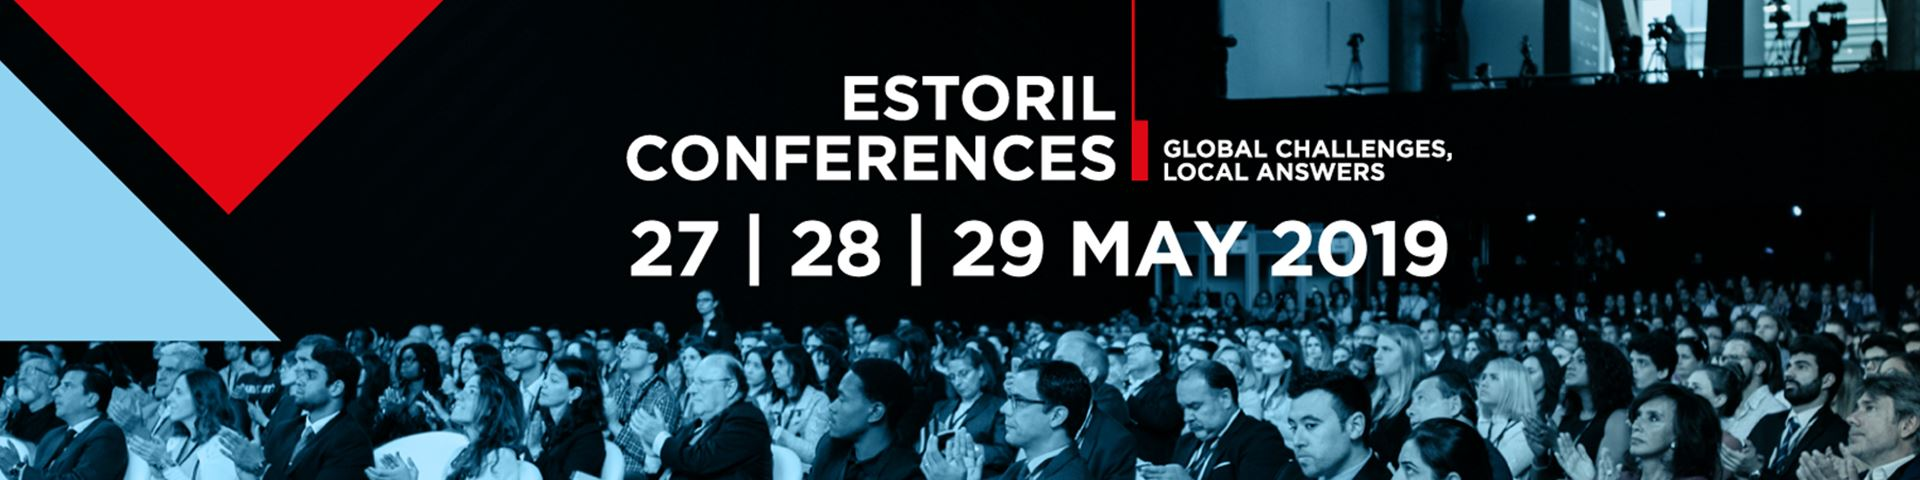 Nova SBE welcomes the 2019 Estoril Conferences